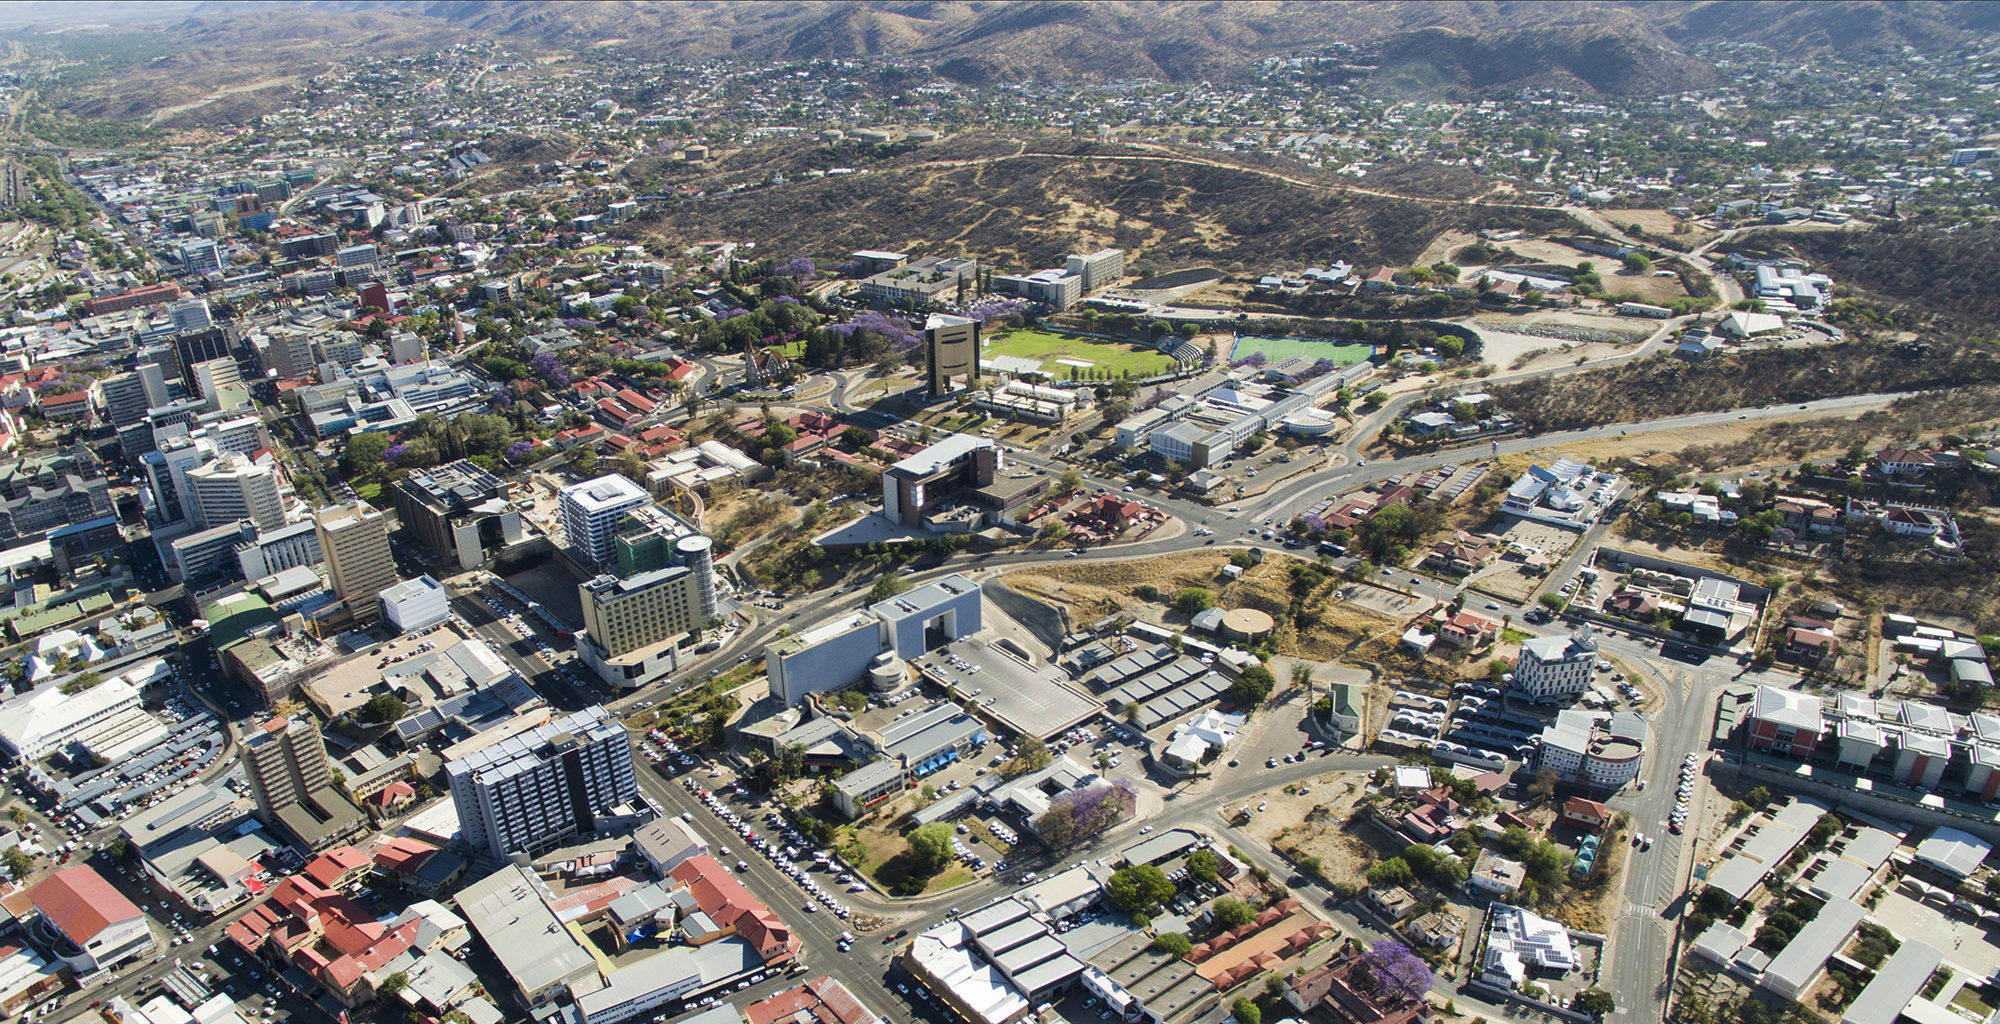 Namibia-Windhoek-Surrounds-Aerial